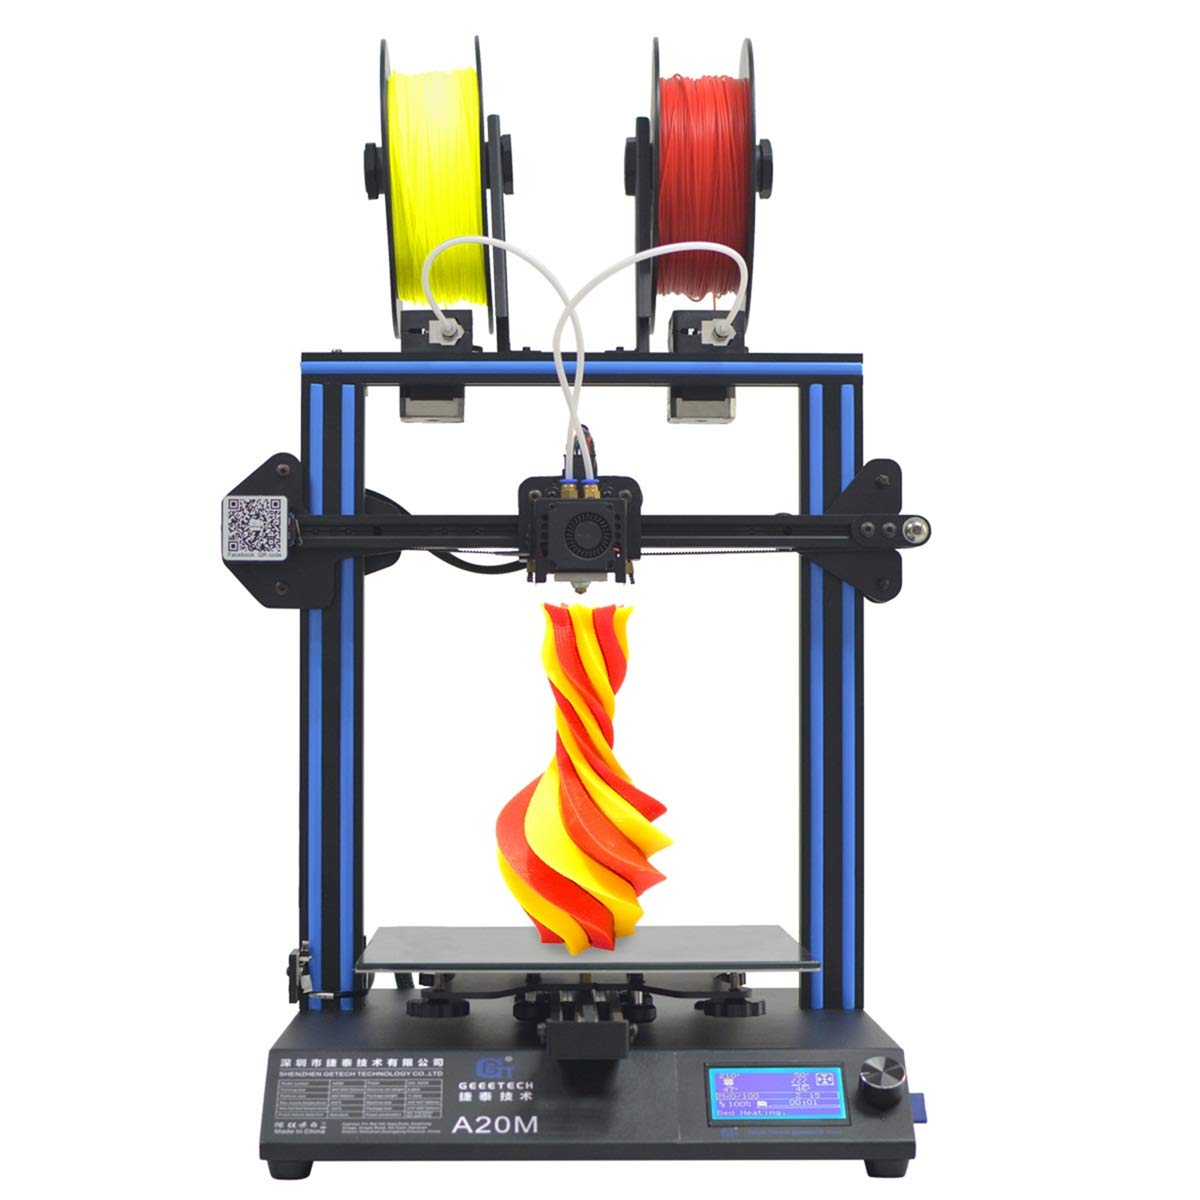 GEEETECH A20M Imprimante 3D avec impression Mix-Colore, base de bâtiment intégré, design double extrusion, Prusa I3 Montage rapide DIY-Kit